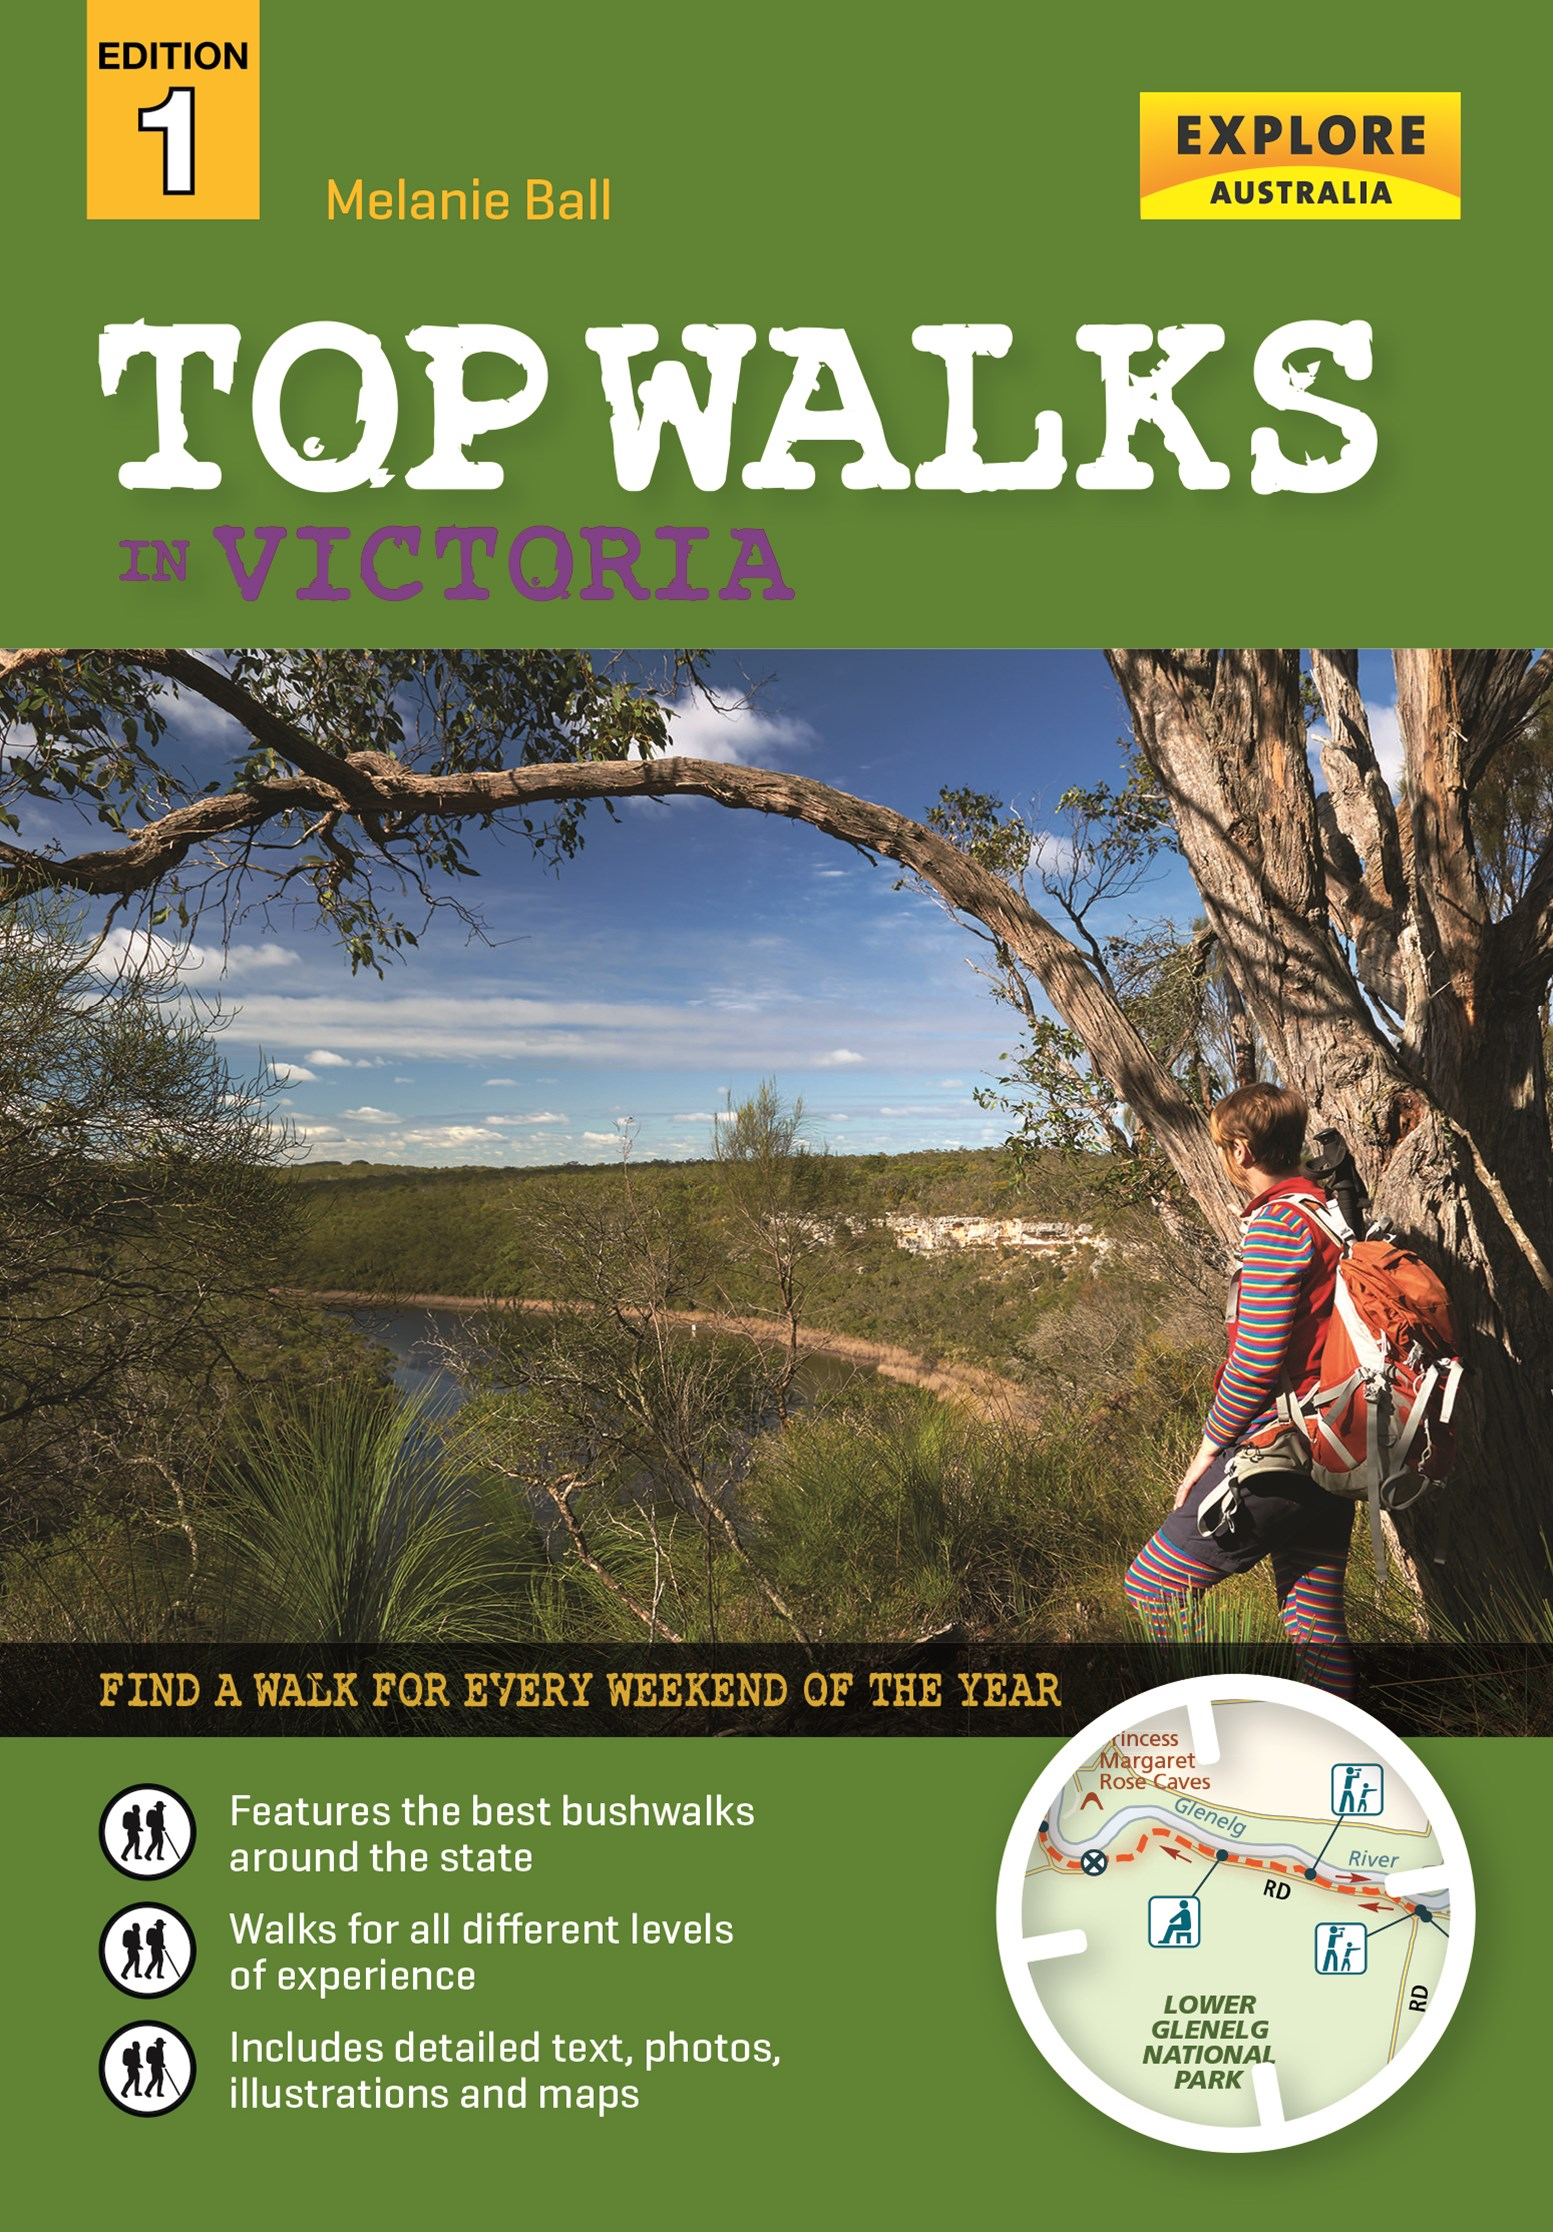 Top Walks in Victoria